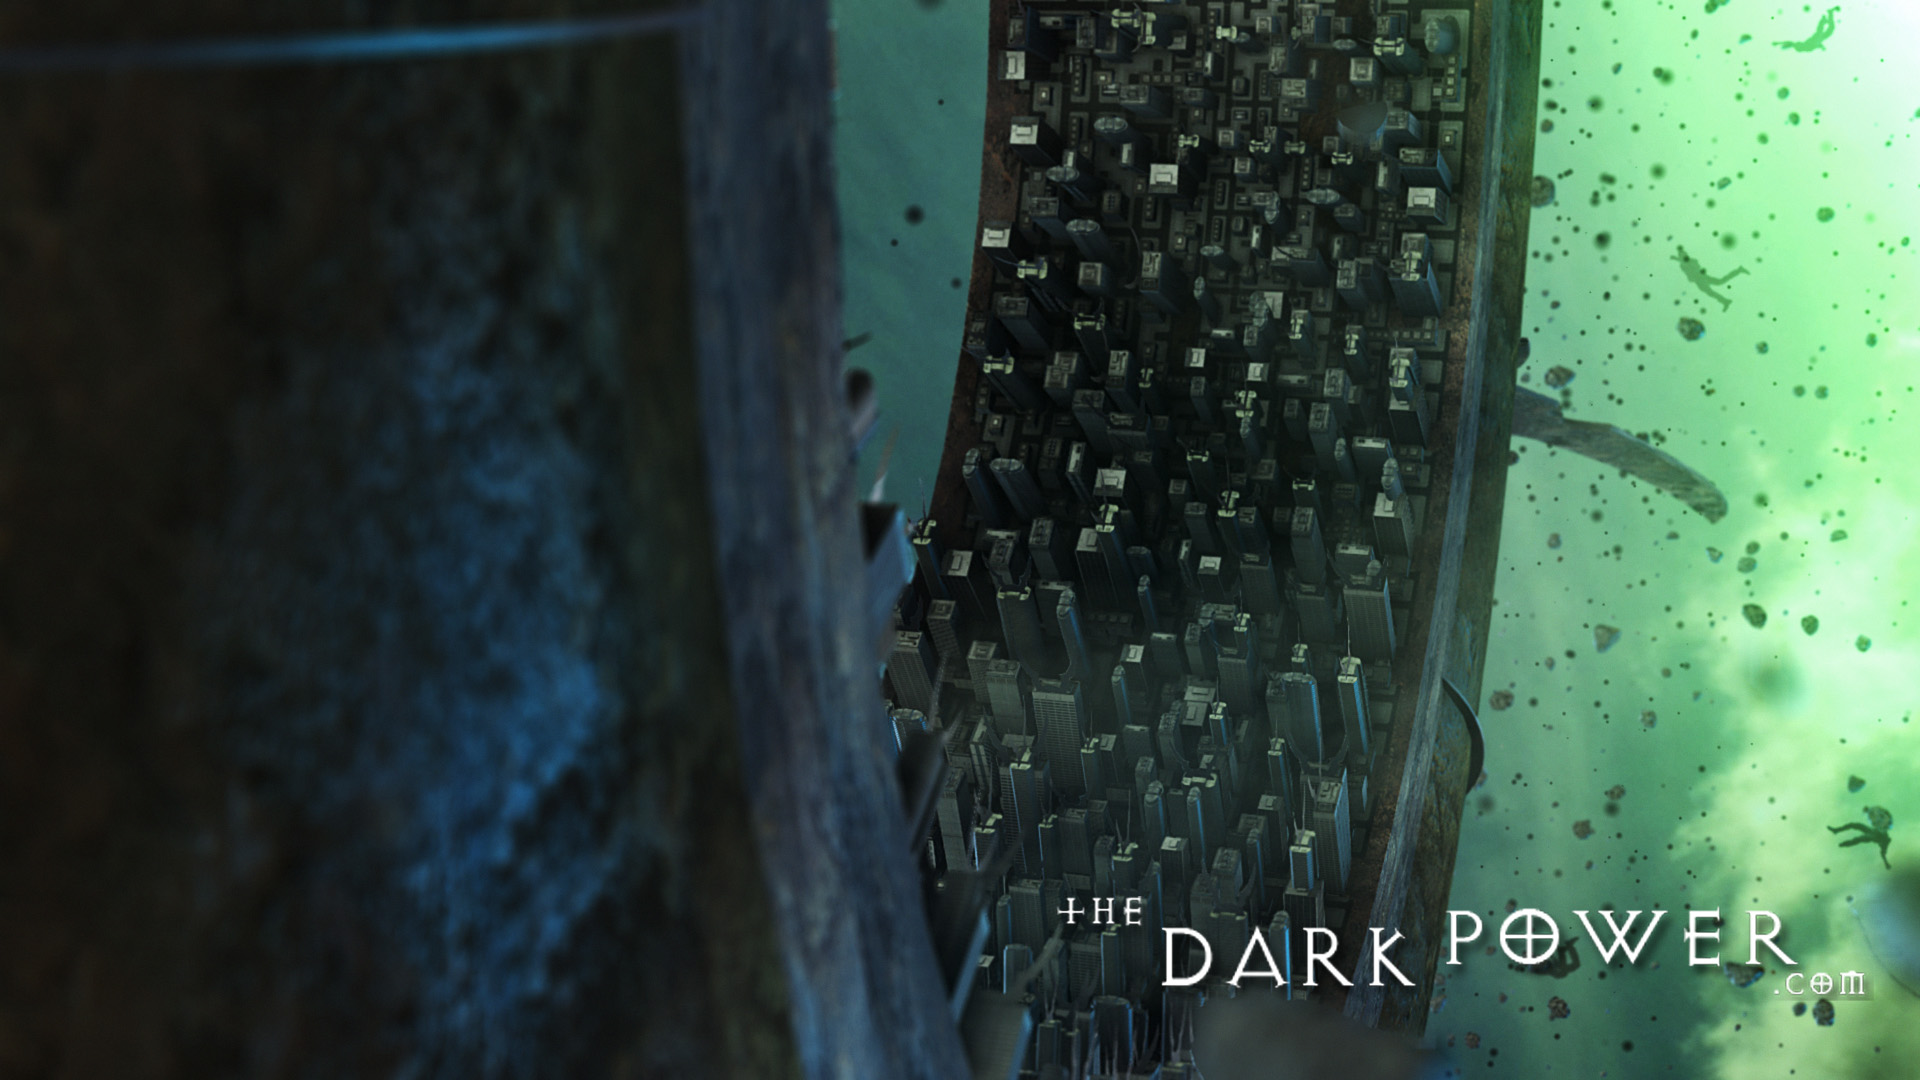 the-dark-power La città di Sigil in grafica CGI, screenshot 4 - by The Dark Power (Joe) thedarkpower.com (2018-11) © dell'autore, tutti i diritti riservati